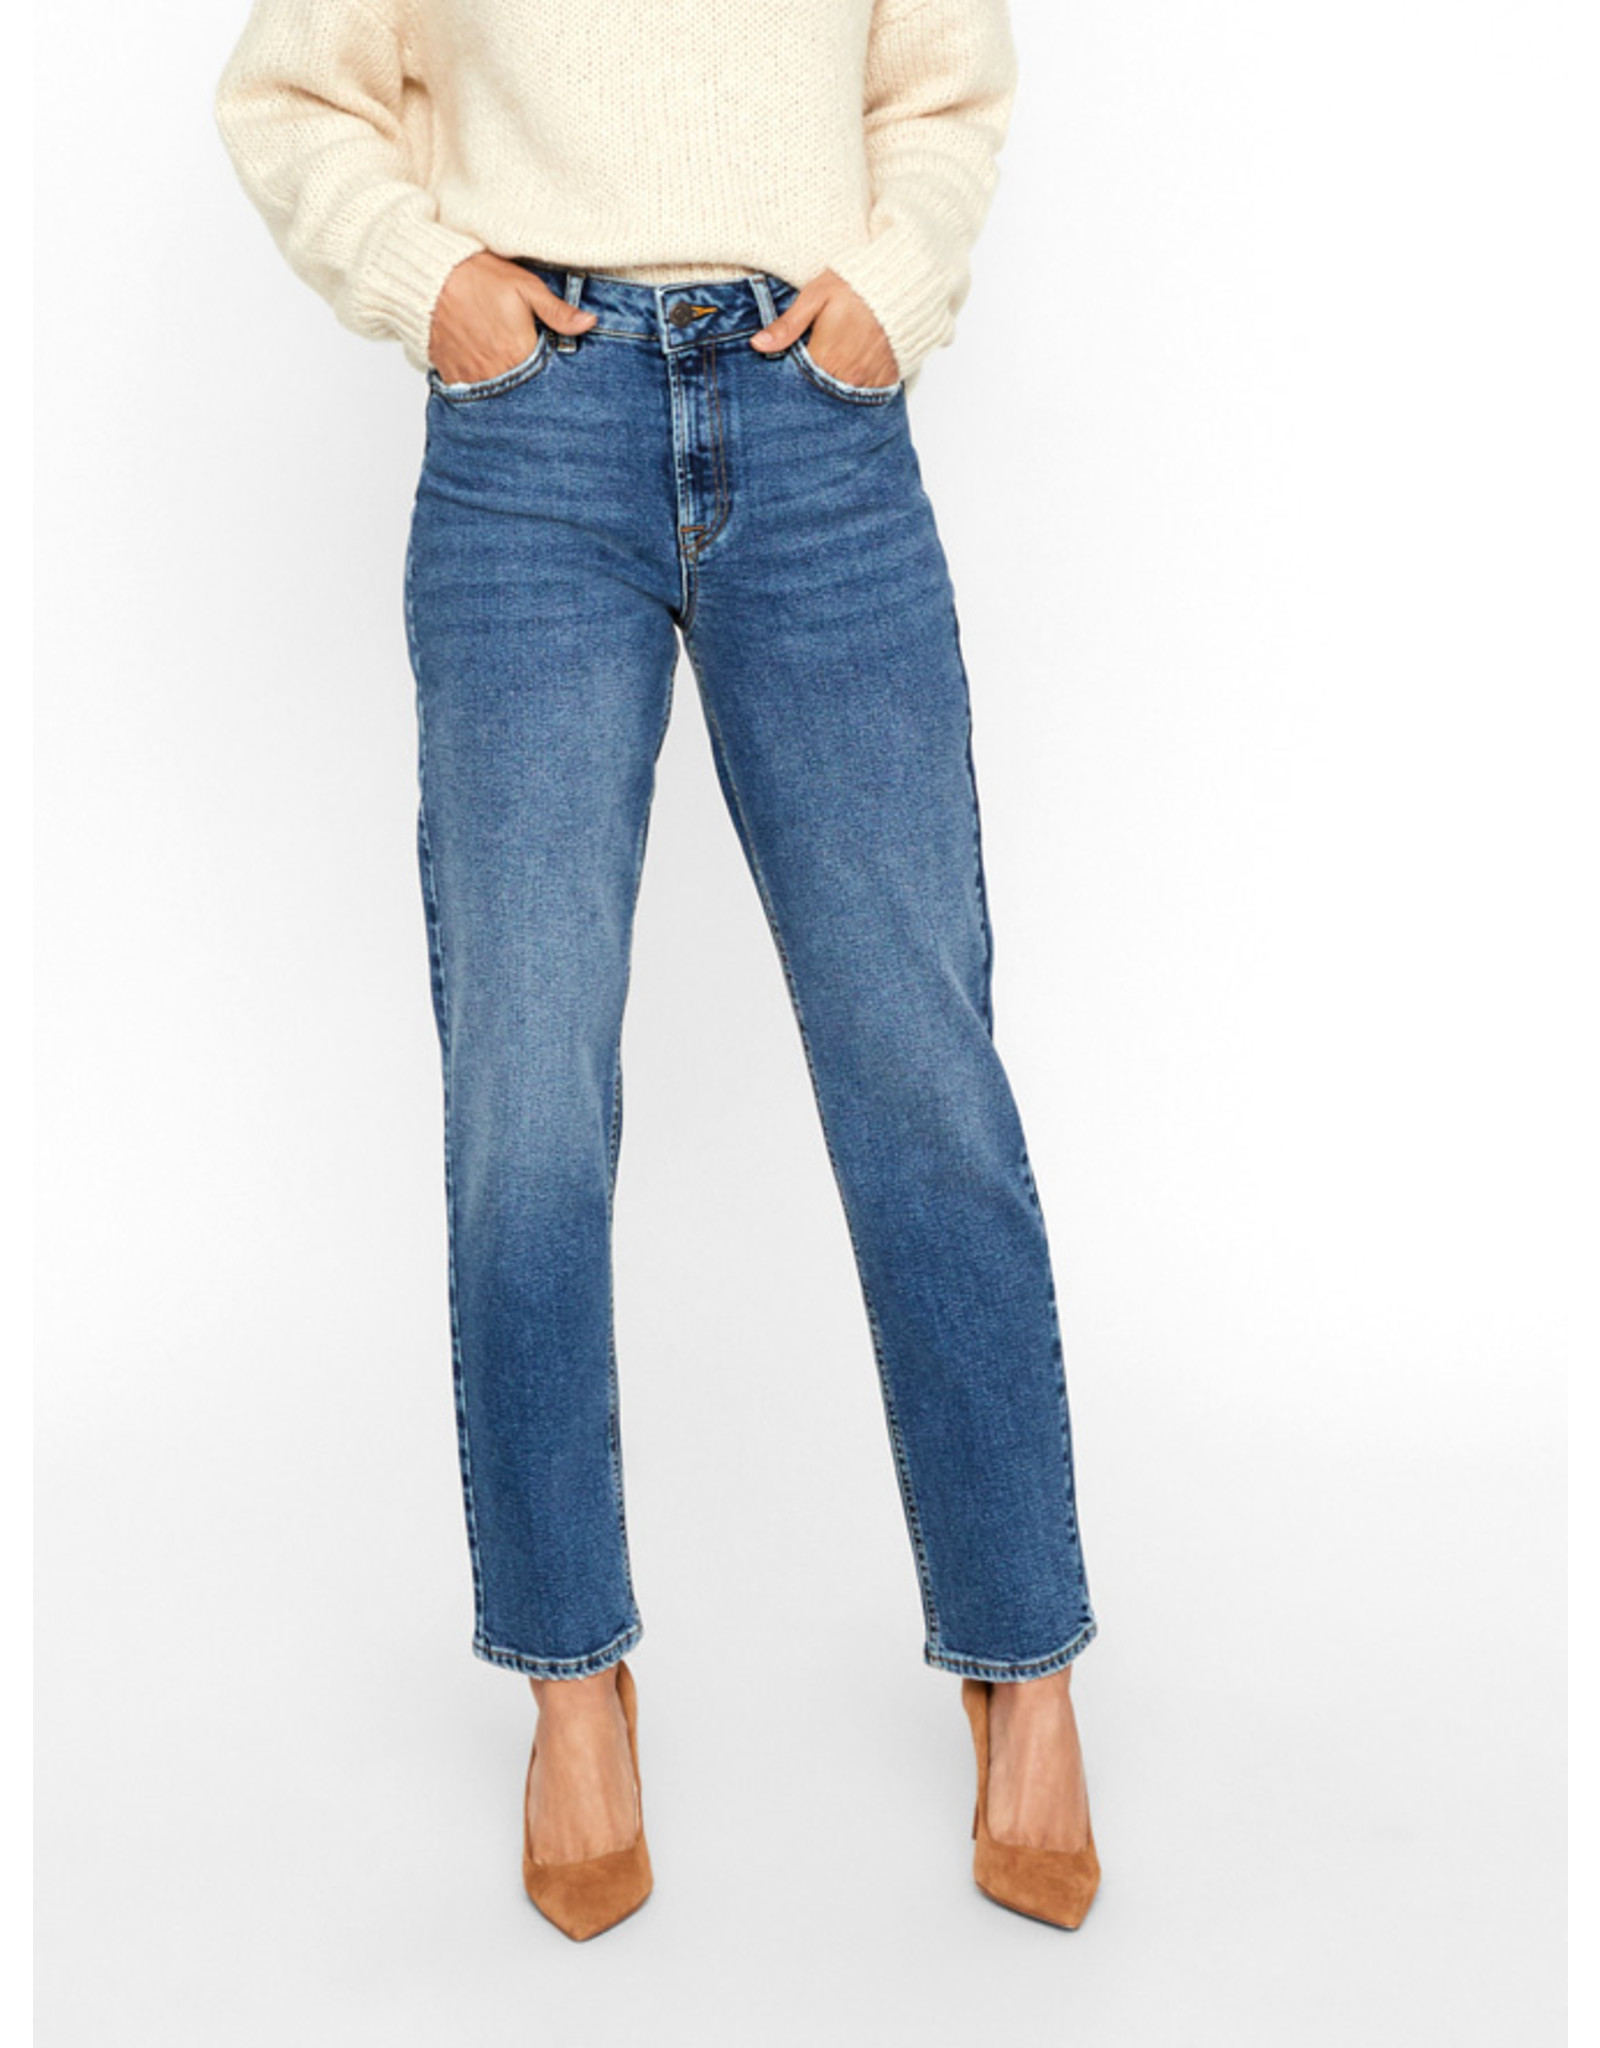 V. W19 SARA RELAXED JEANS LT BLUE